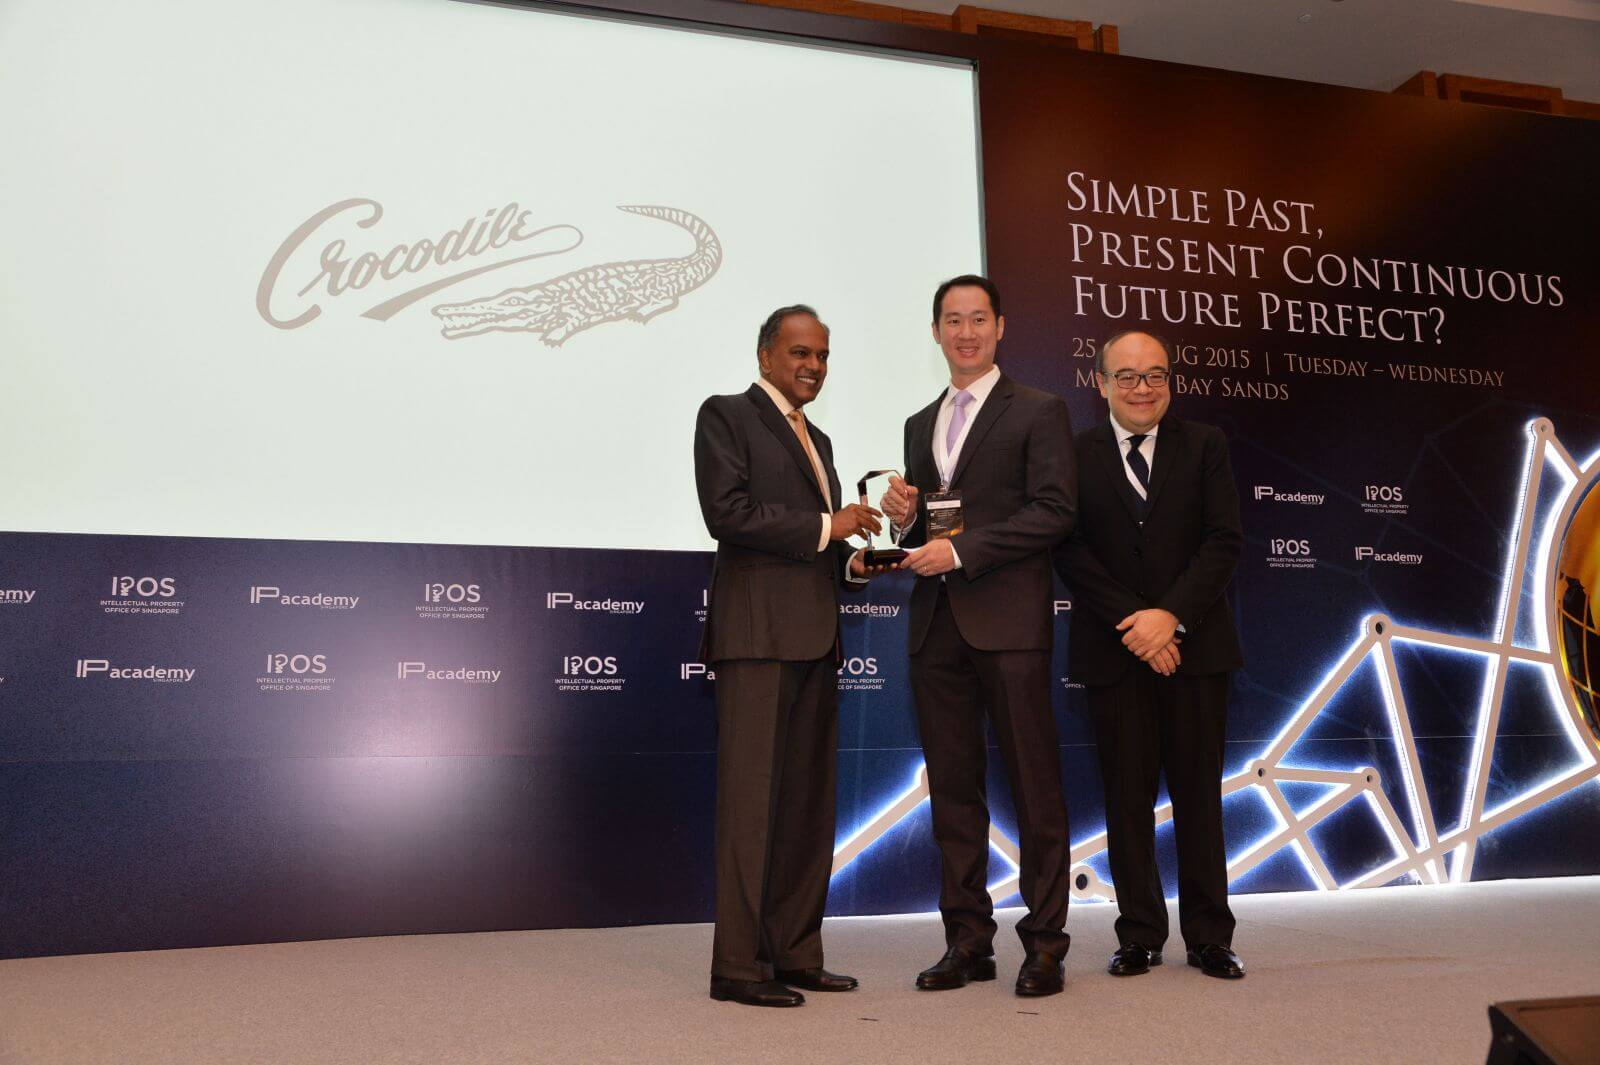 Winner of the IPOS SG50 Trade Marks Contest